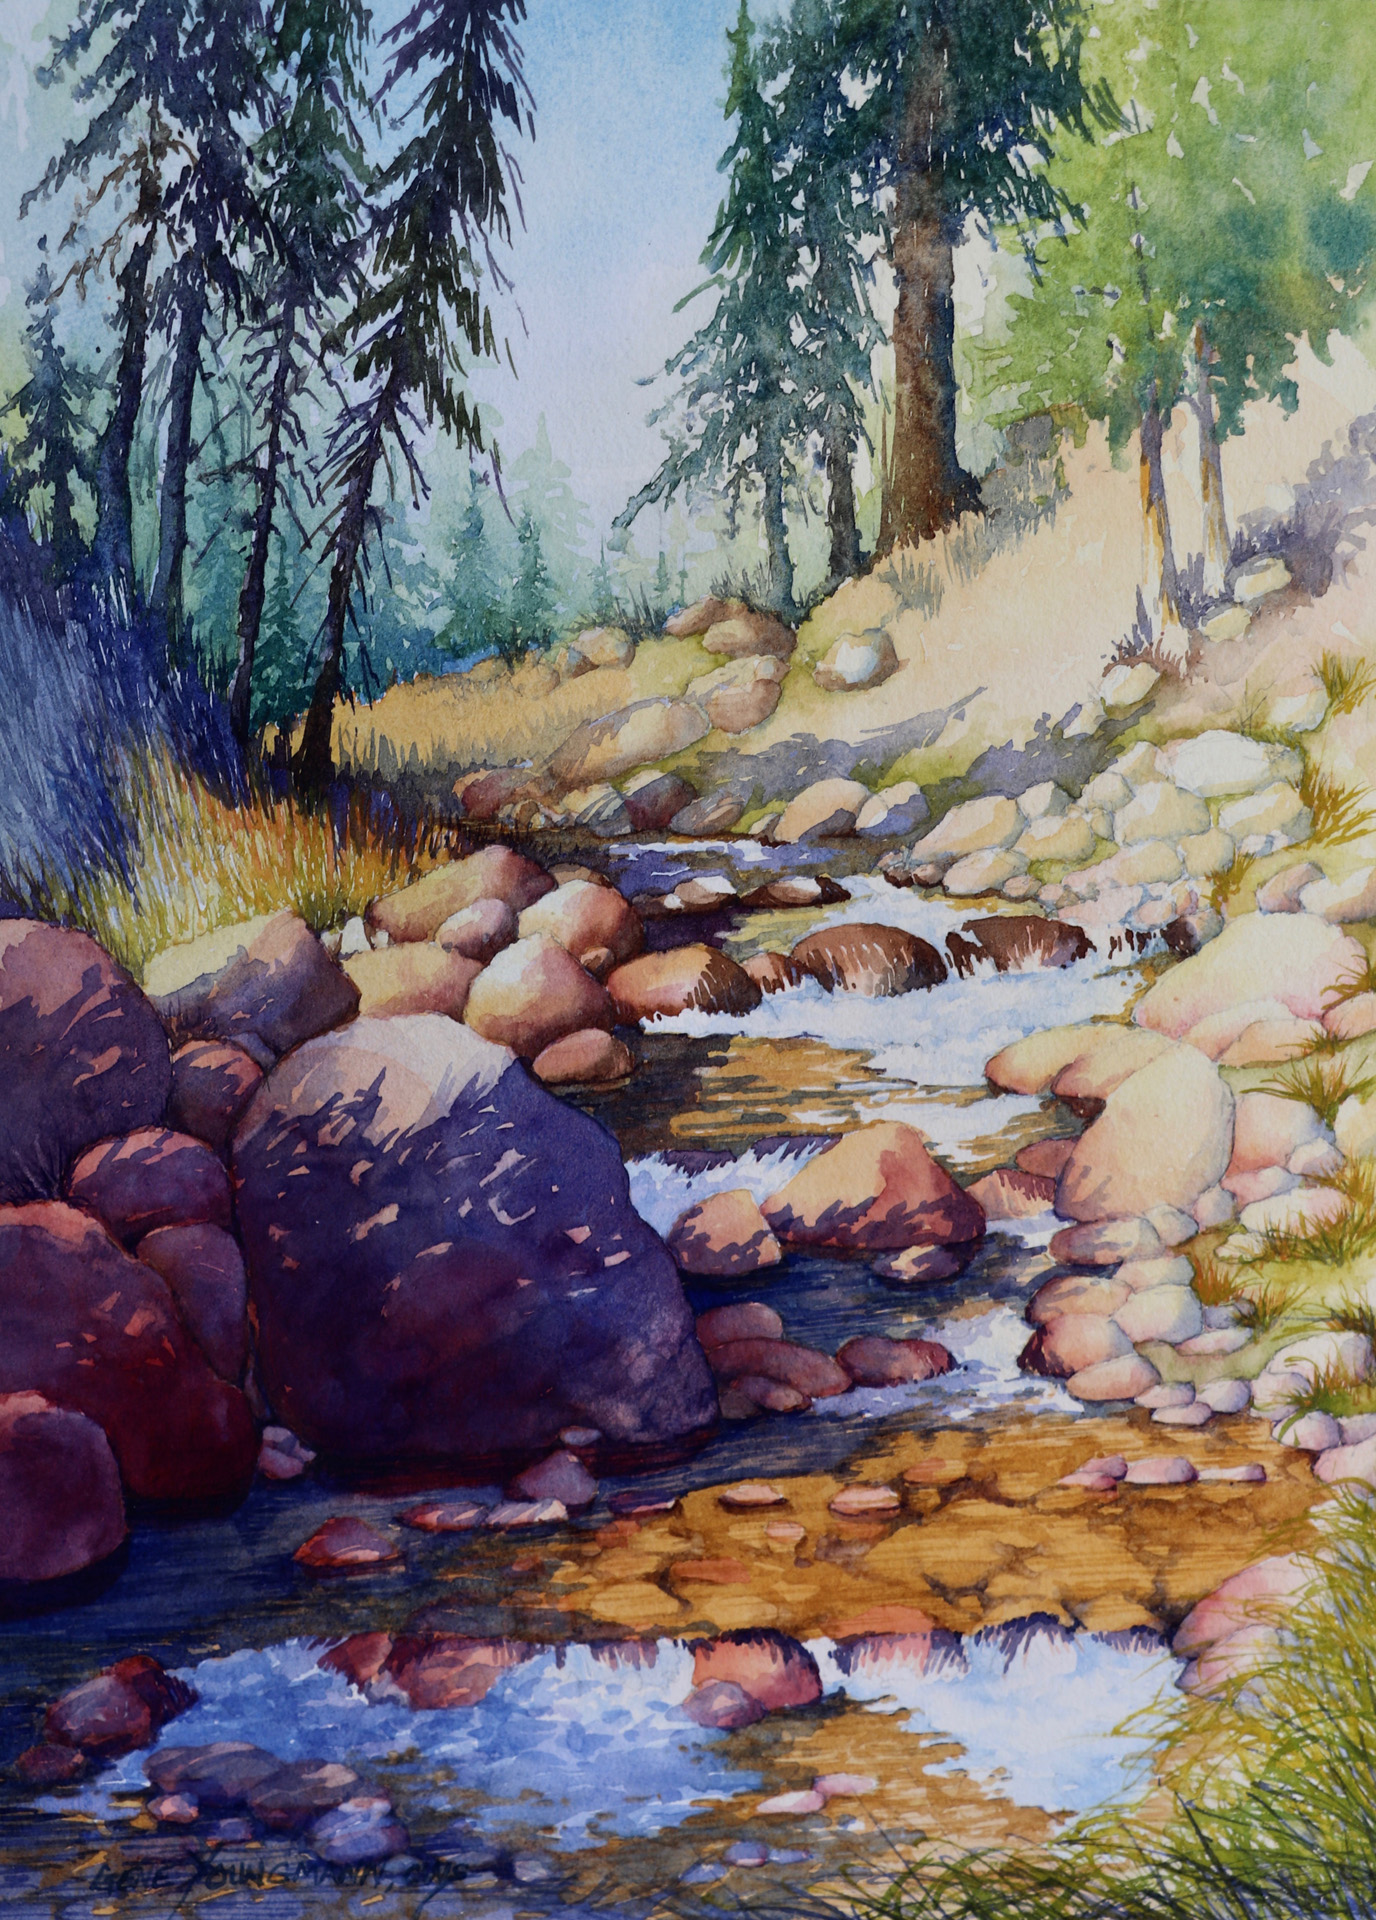 Painting #74 Rocky Creek